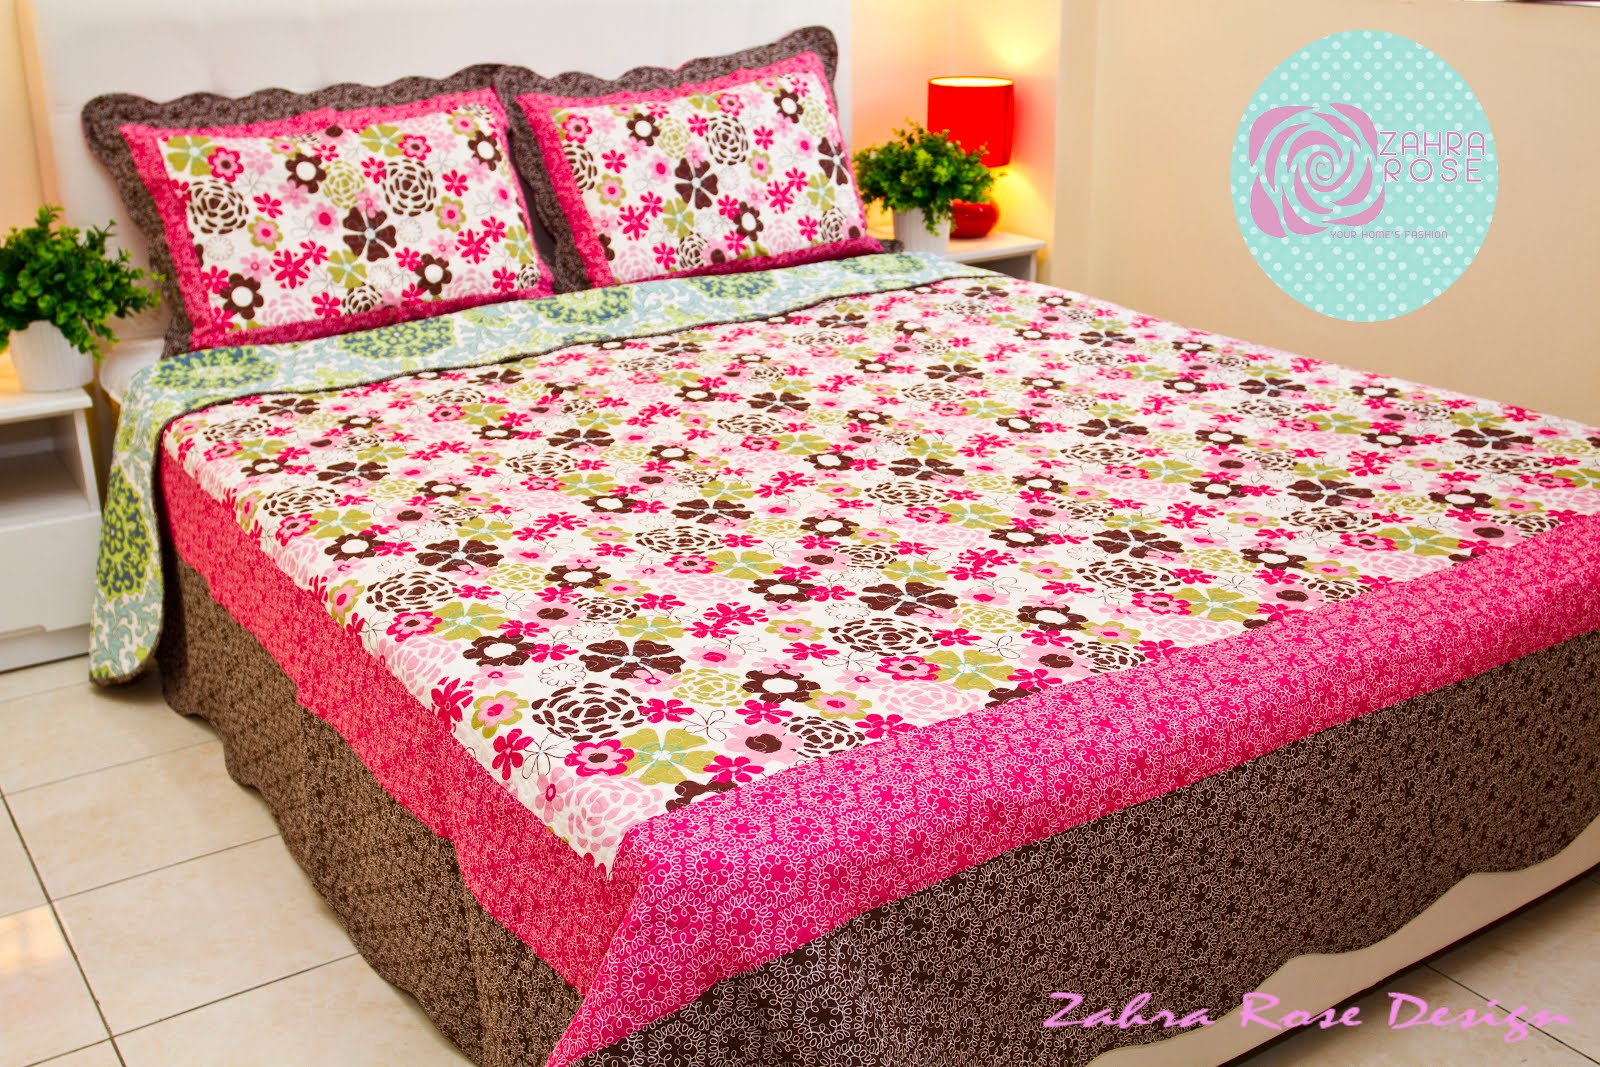 Bed sheet design patchwork - Zr 009